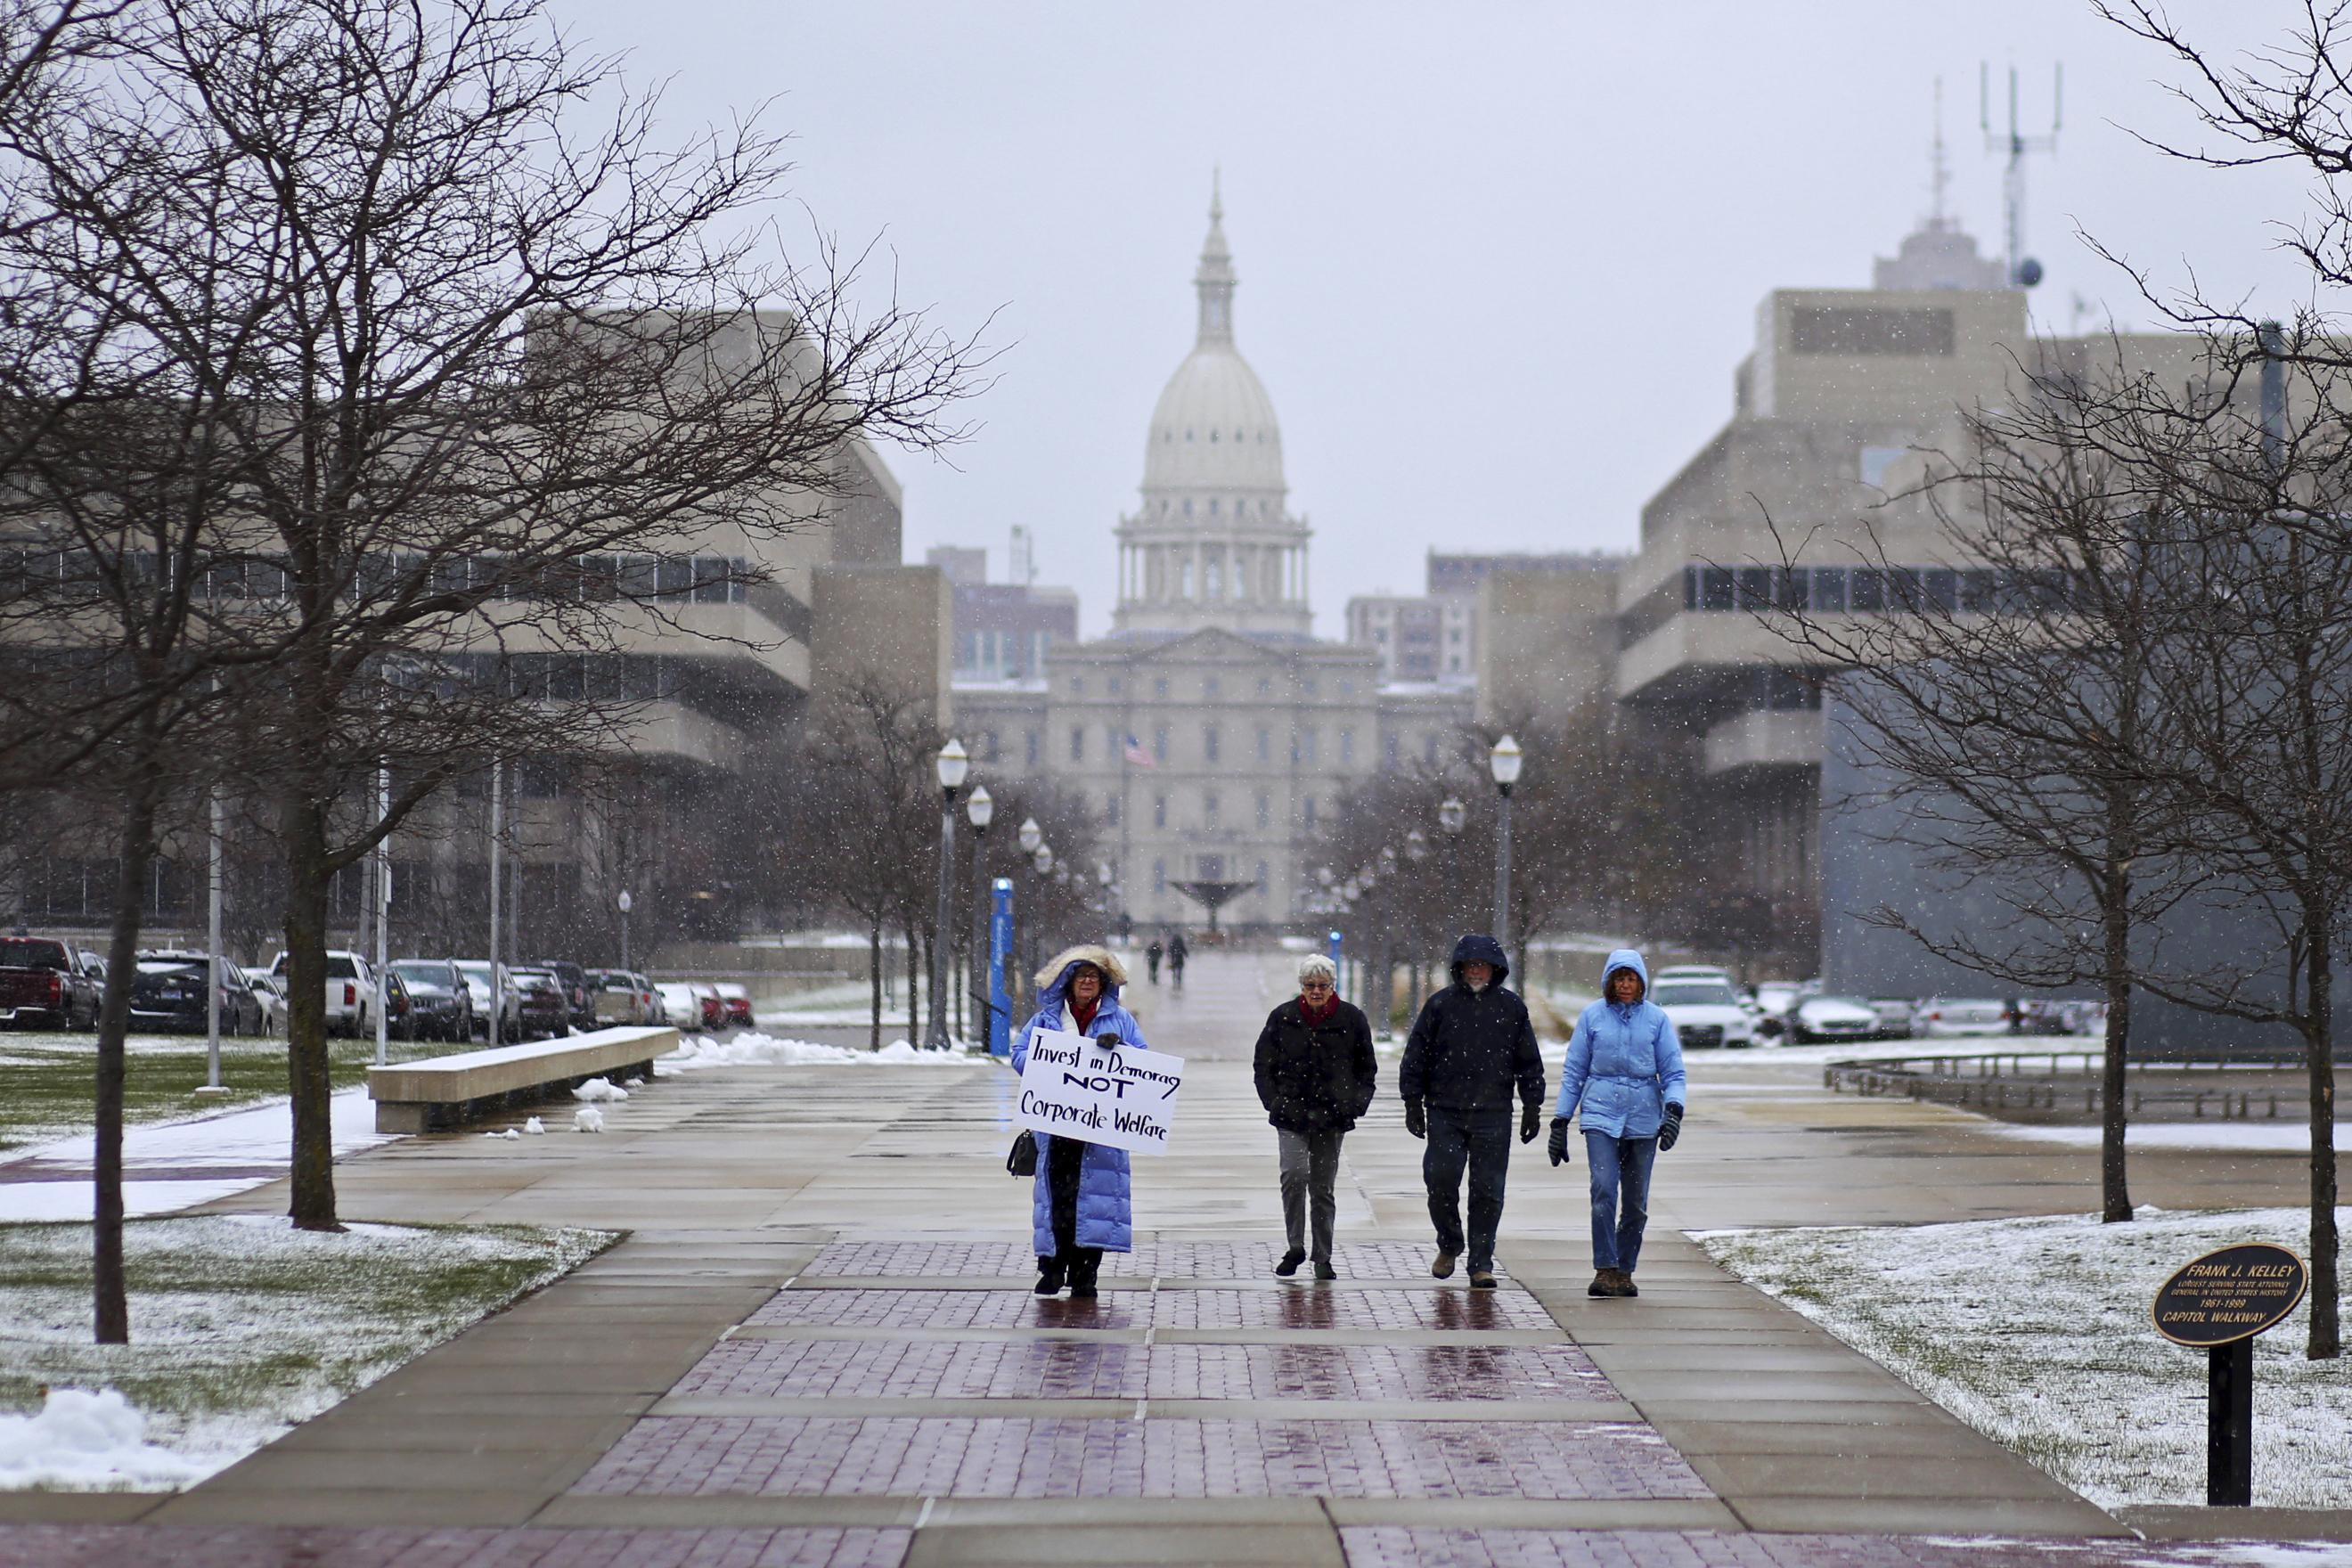 In this Dec. 8, 2016, AP photo, Michigan residents walk towards the Michigan State Supreme Court for a rally to speak out against the courts decision to shut down Michigan's recount on Thursday, in Lansing. Michigan's recount of presidential votes is over after a judge lifted an order that forced a statewide review of millions of ballots. The recount lasted three days in more than 20 of the state's 83 counties. Lansing, Michigan, Dec. 8, 2016 | Photo by Samantha Madar /Jackson Citizen Patriot via AP; St. George News